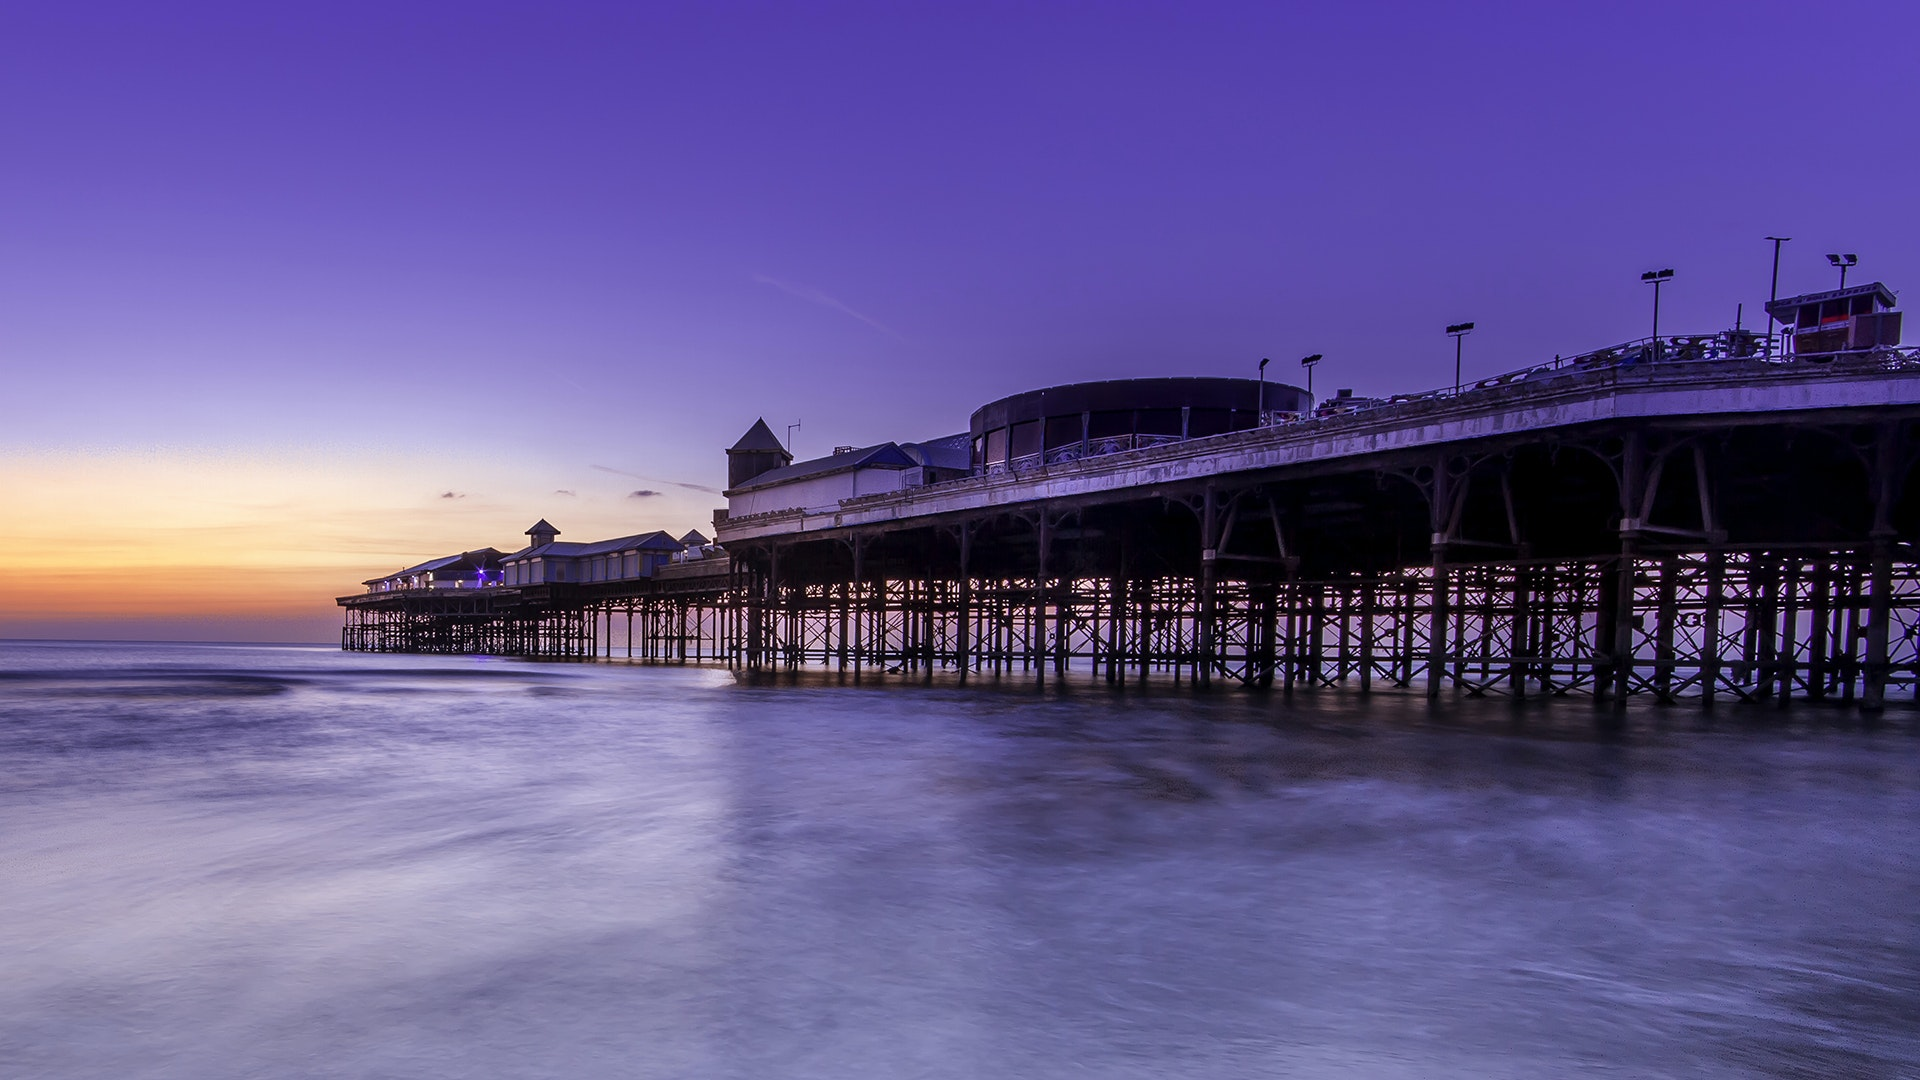 Also on the WMF list, the historic Central Pier in Blackpool, England, built in 1868.